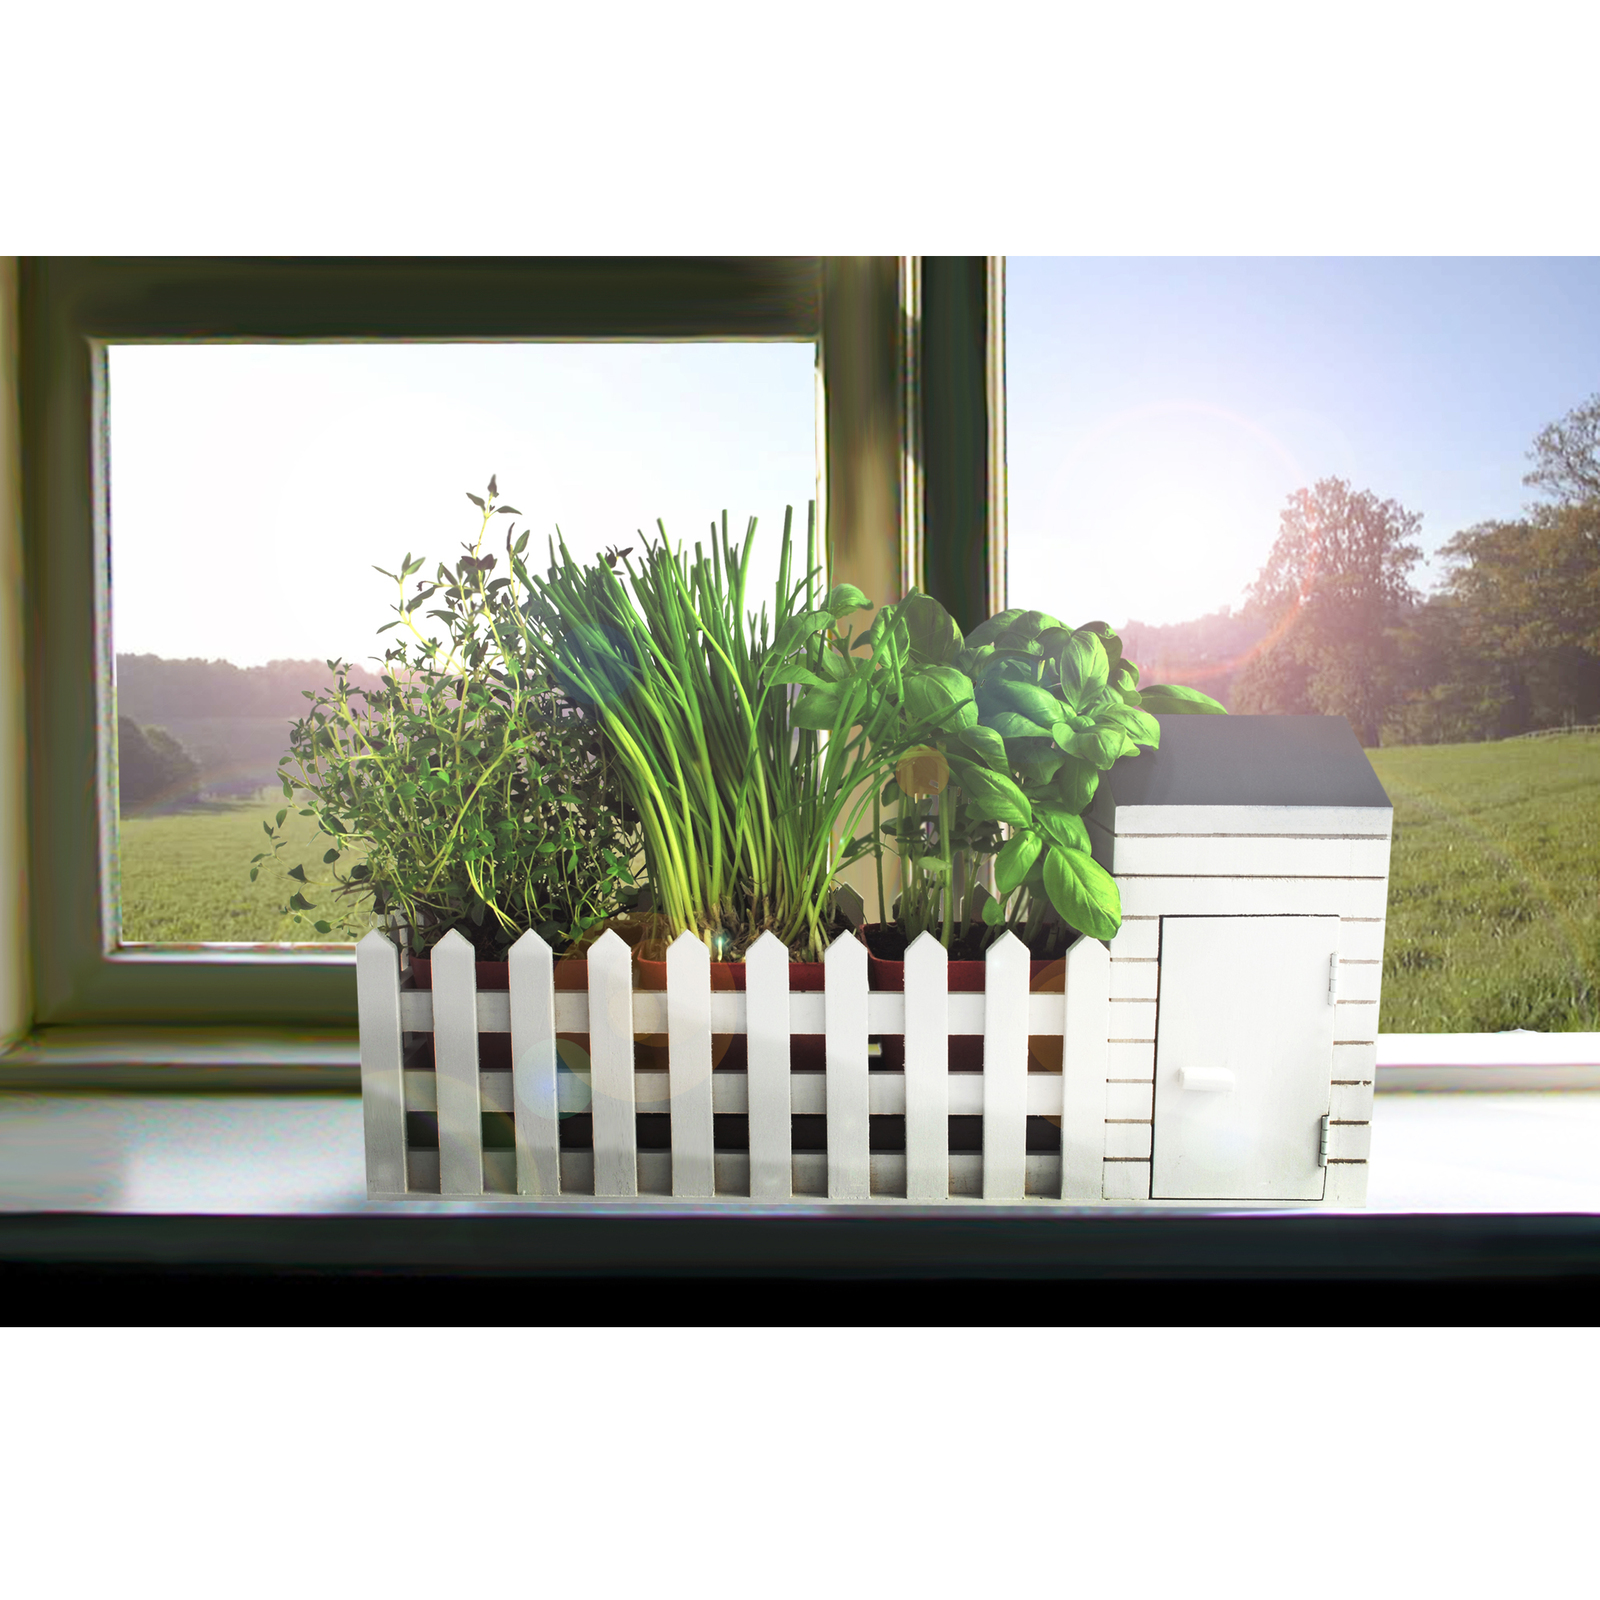 Indoor Allotment Gift Set image